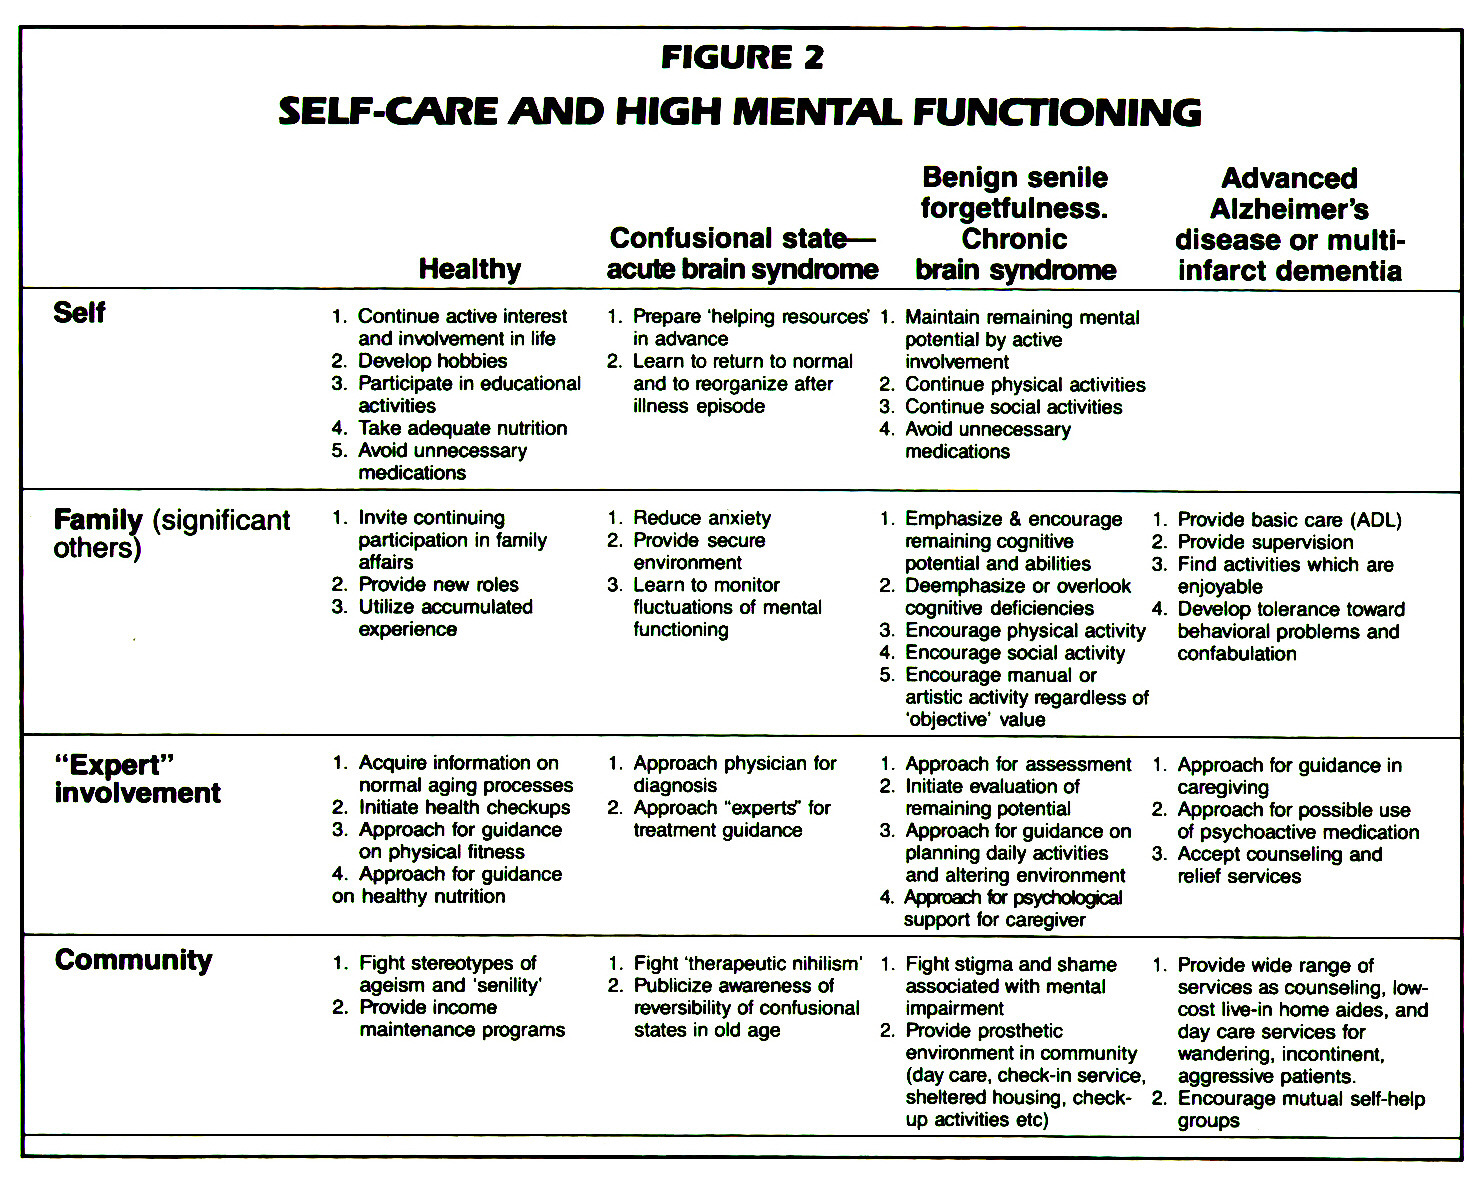 FIGURE 2SELF-CARE AND HIGH MENTAL FUNCTIONING